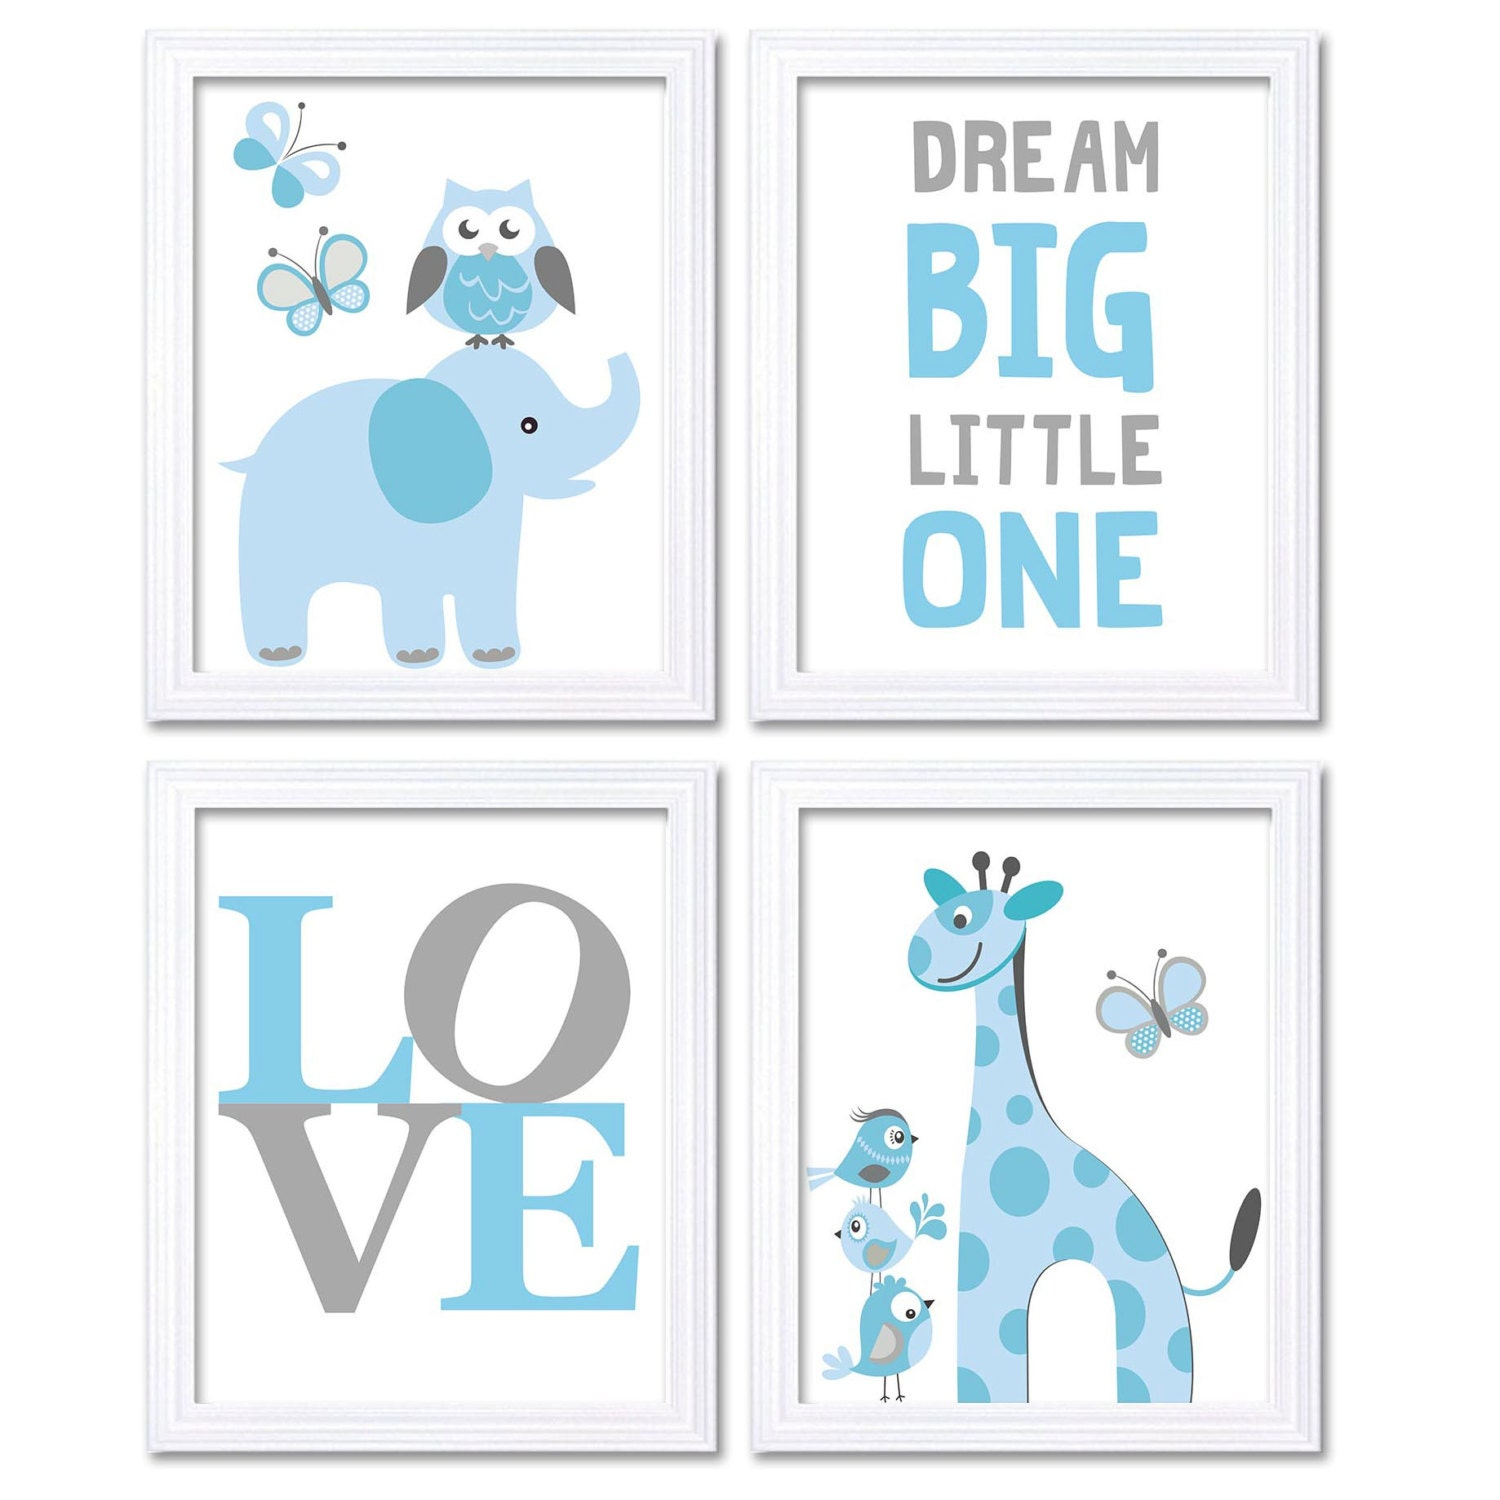 Baby Blue Grey Elephant Giraffe Owl Nursery Art Dream Big Little One LOVE Set of 4 Prints Child Kids